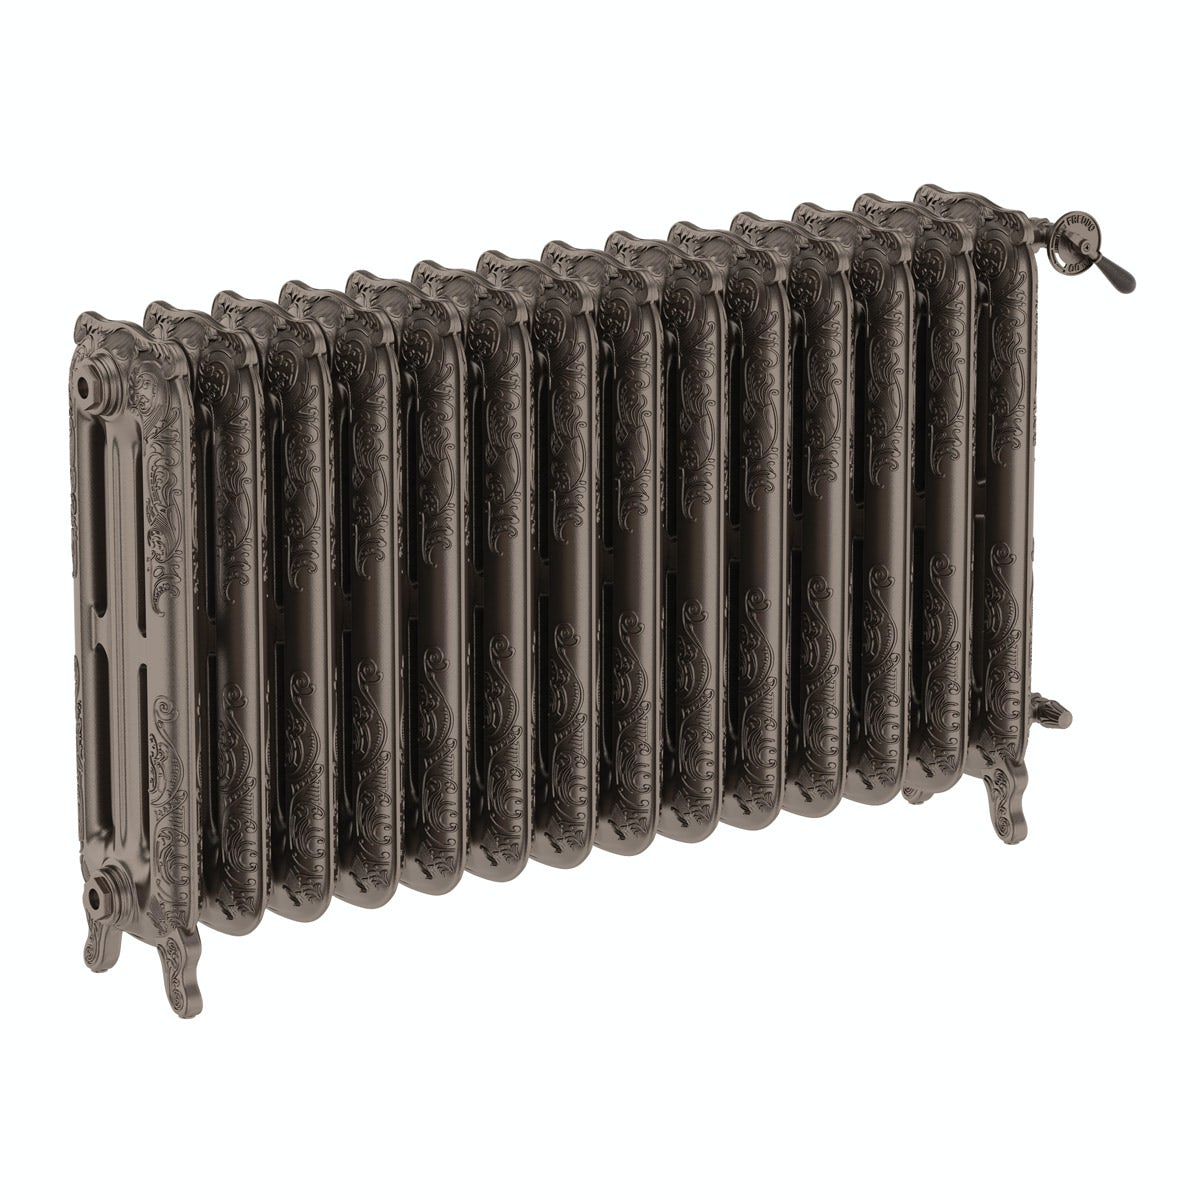 Terma Oxford russet freestanding cast iron radiator 710 x 1180